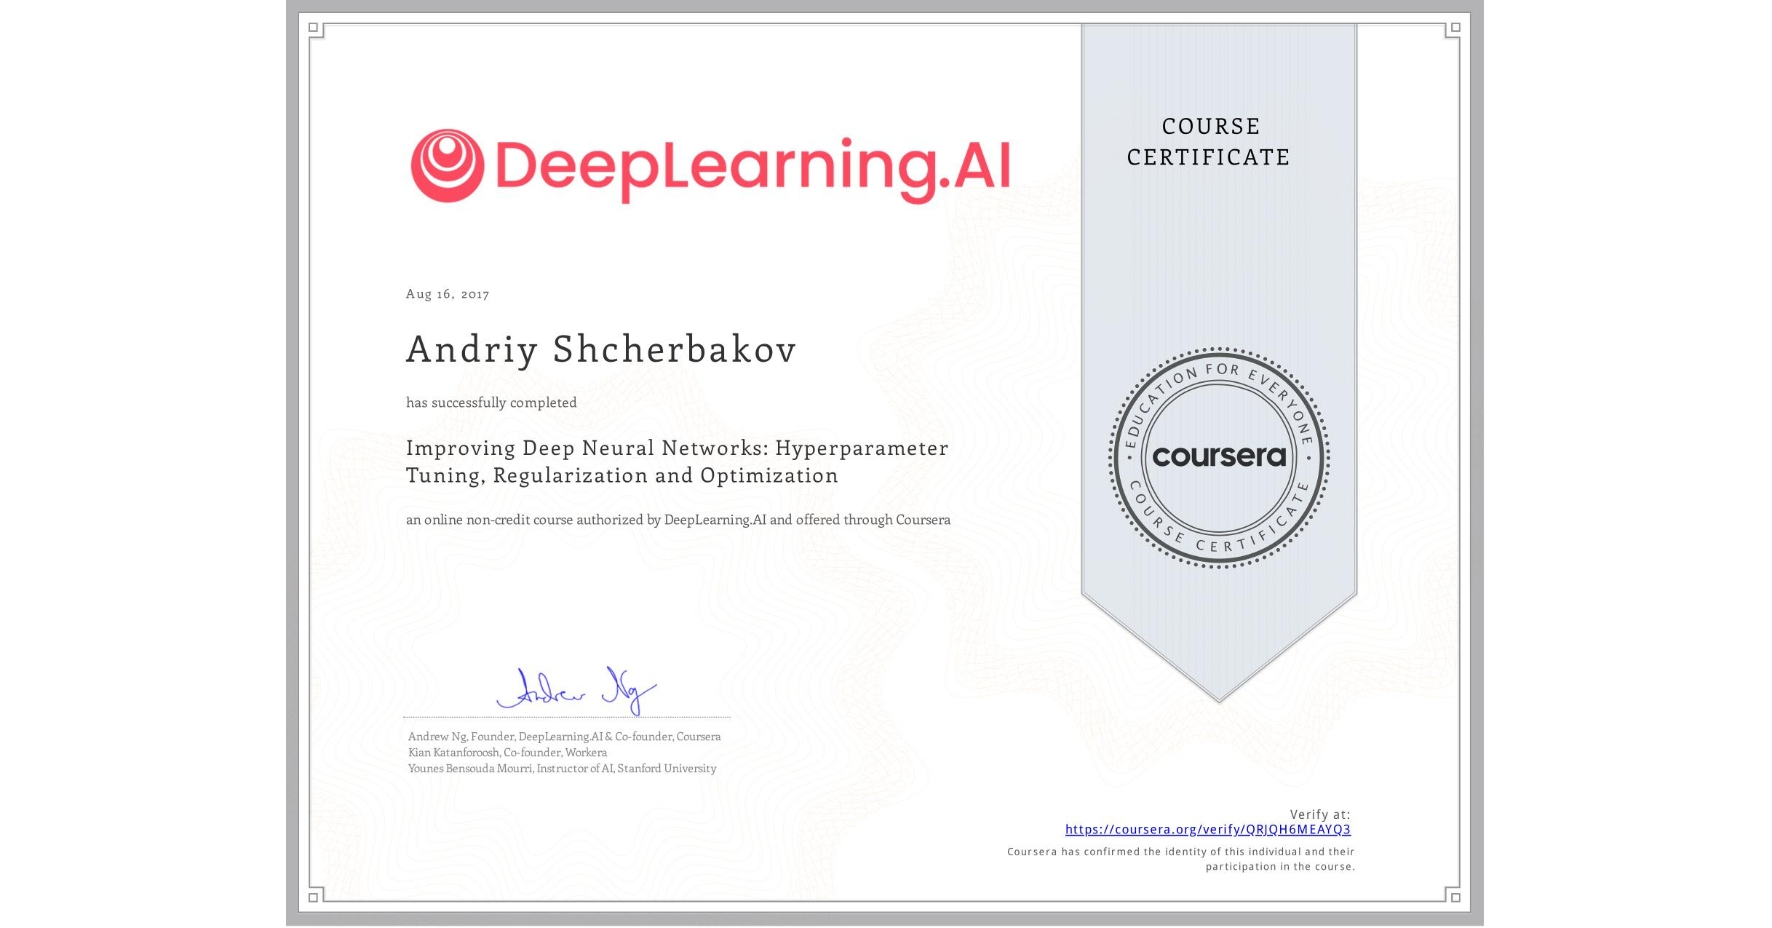 View certificate for Andriy Shcherbakov, Improving Deep Neural Networks: Hyperparameter tuning, Regularization and Optimization, an online non-credit course authorized by DeepLearning.AI and offered through Coursera